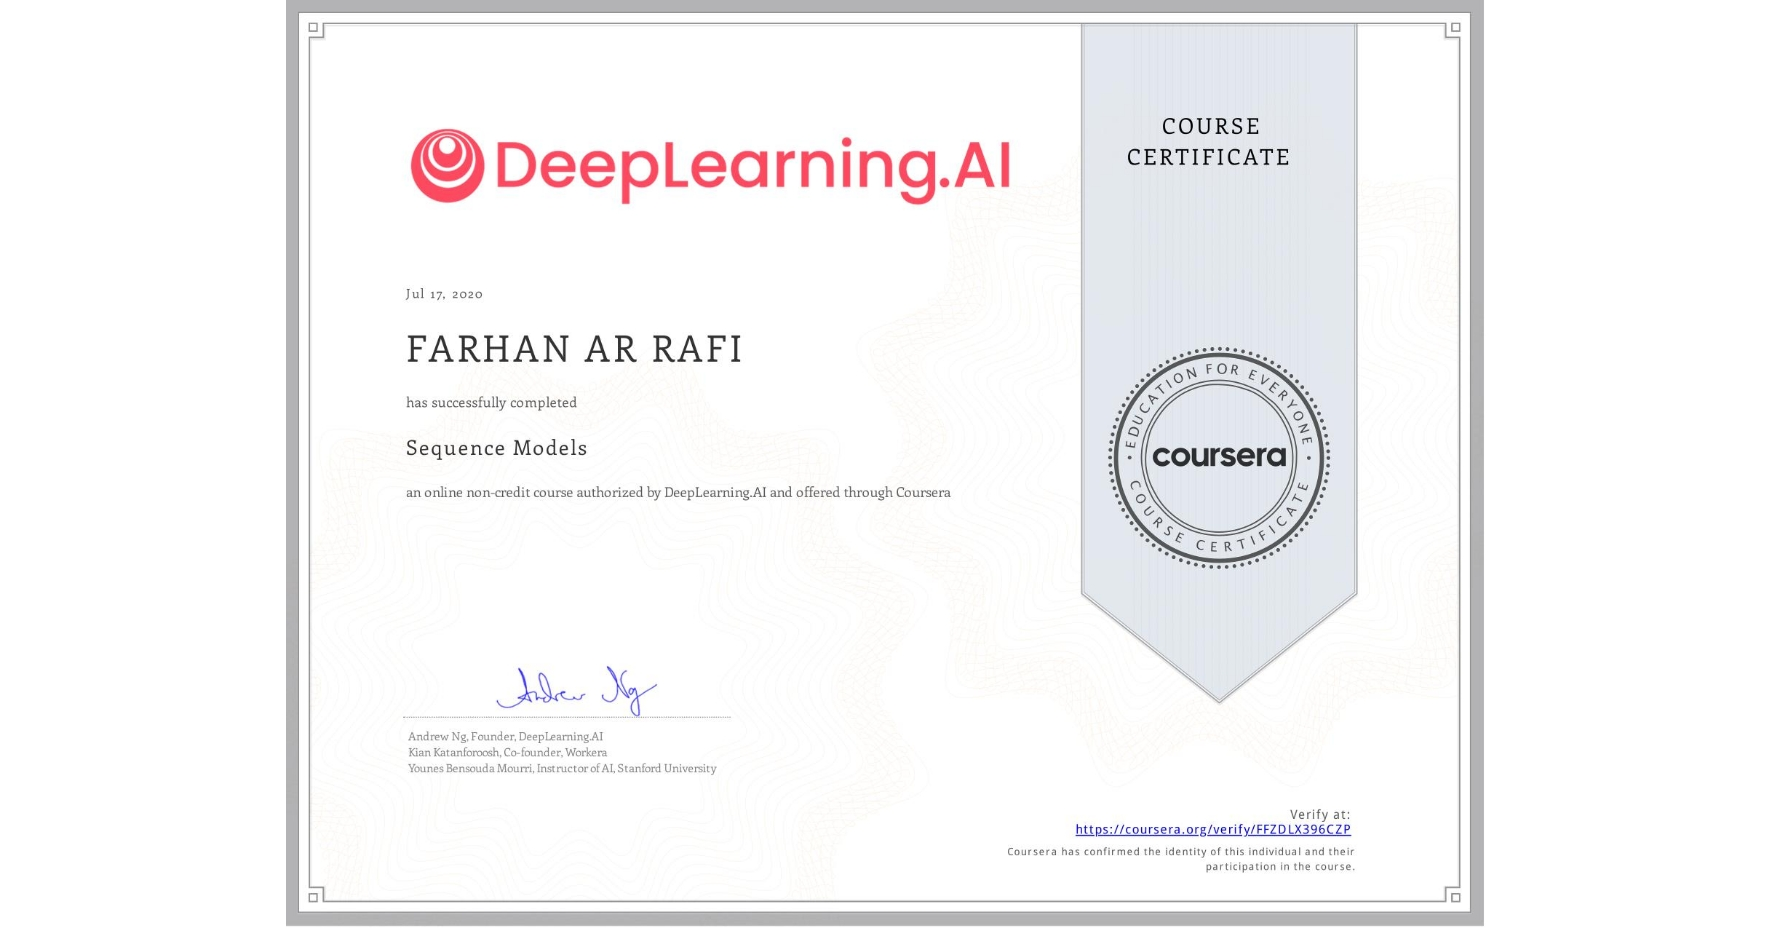 View certificate for FARHAN AR  RAFI, Sequence Models, an online non-credit course authorized by DeepLearning.AI and offered through Coursera